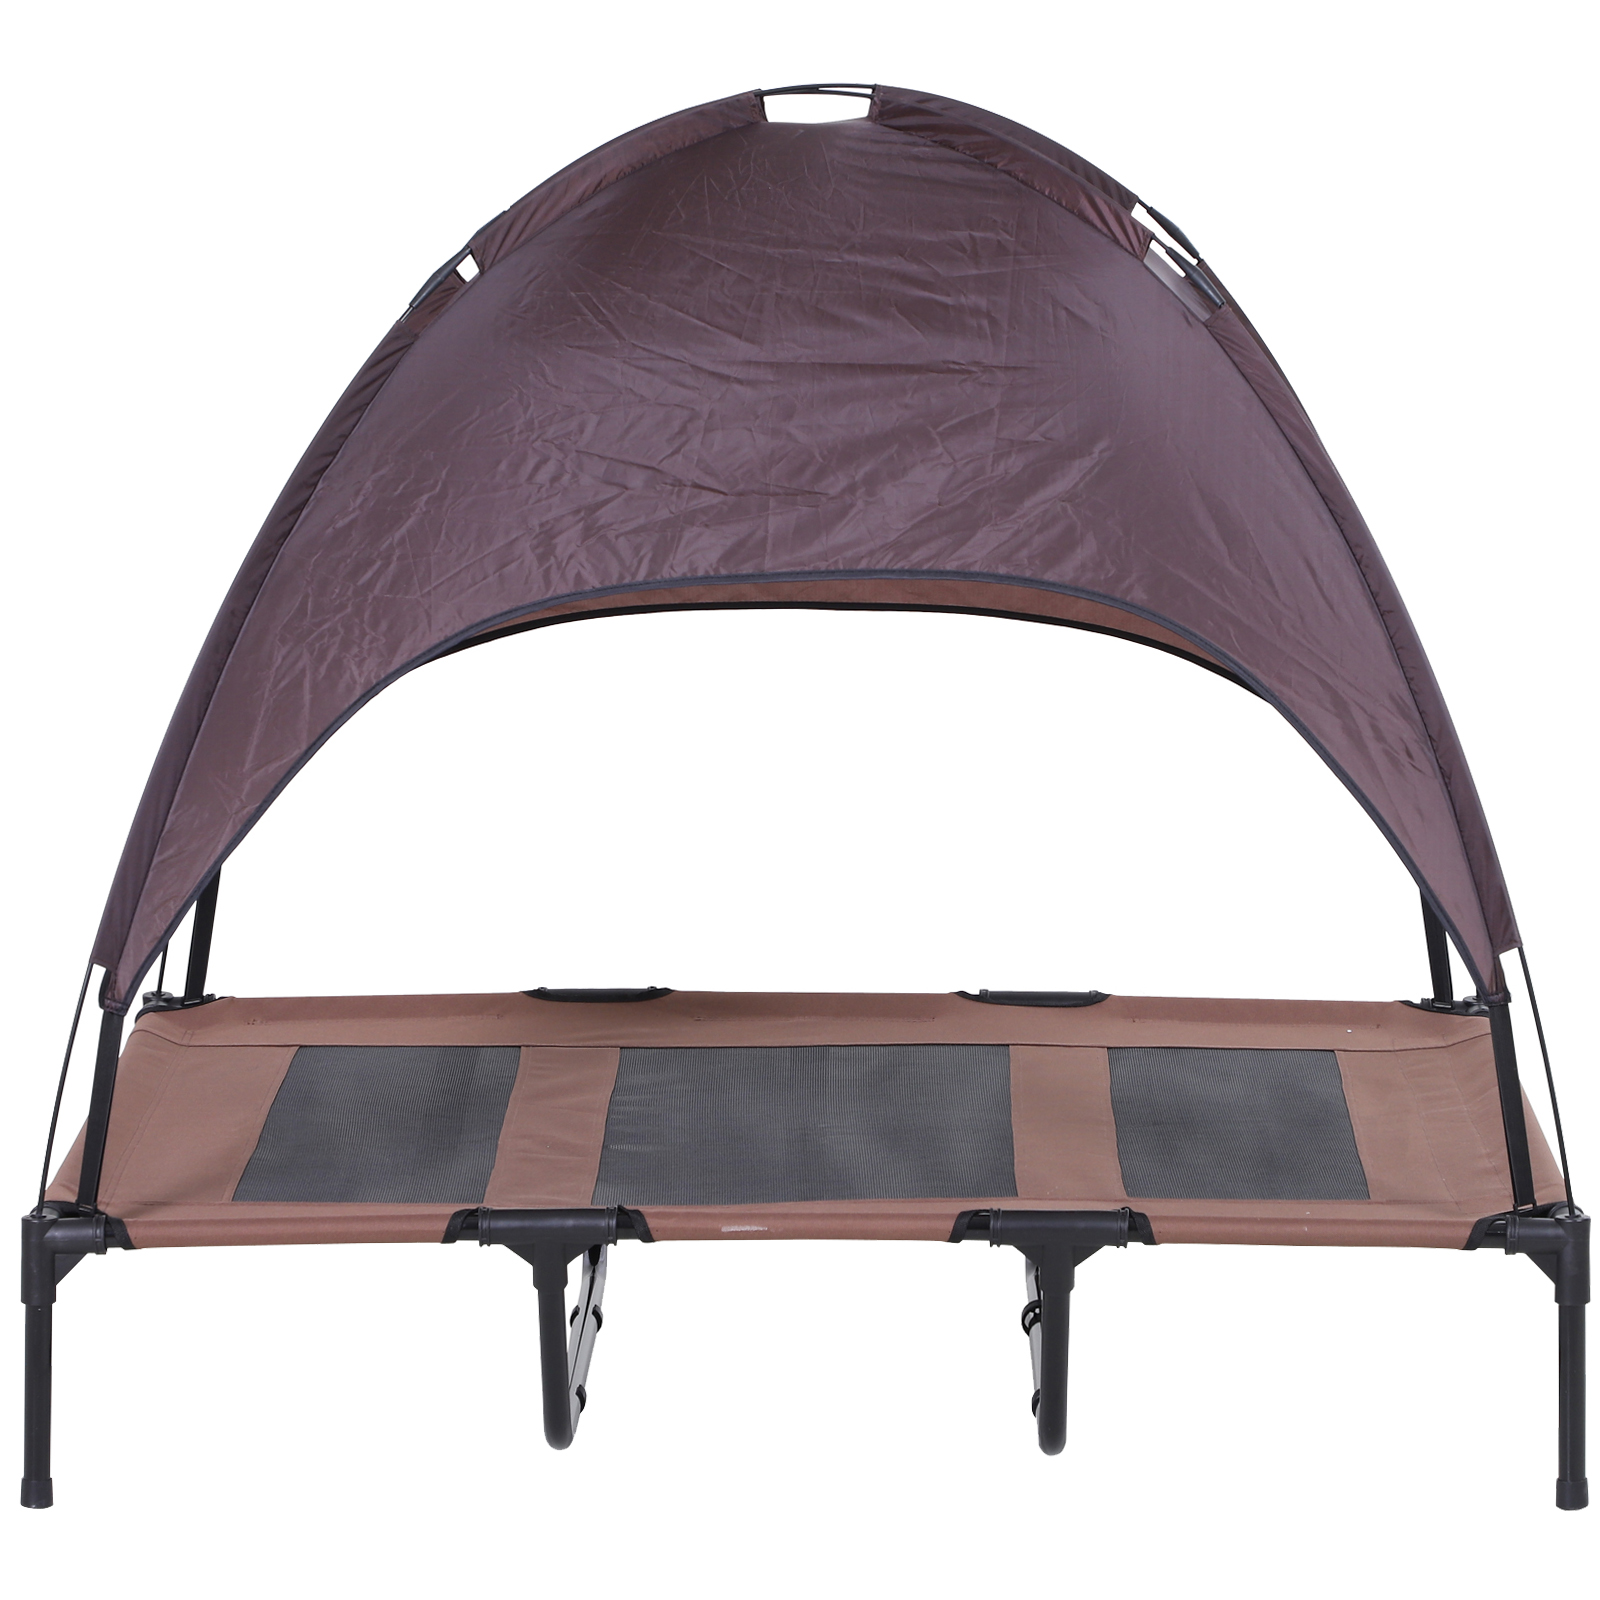 PawHut-Elevated-Pet-Bed-Dog-Foldable-Cot-Tent-Canopy thumbnail 12